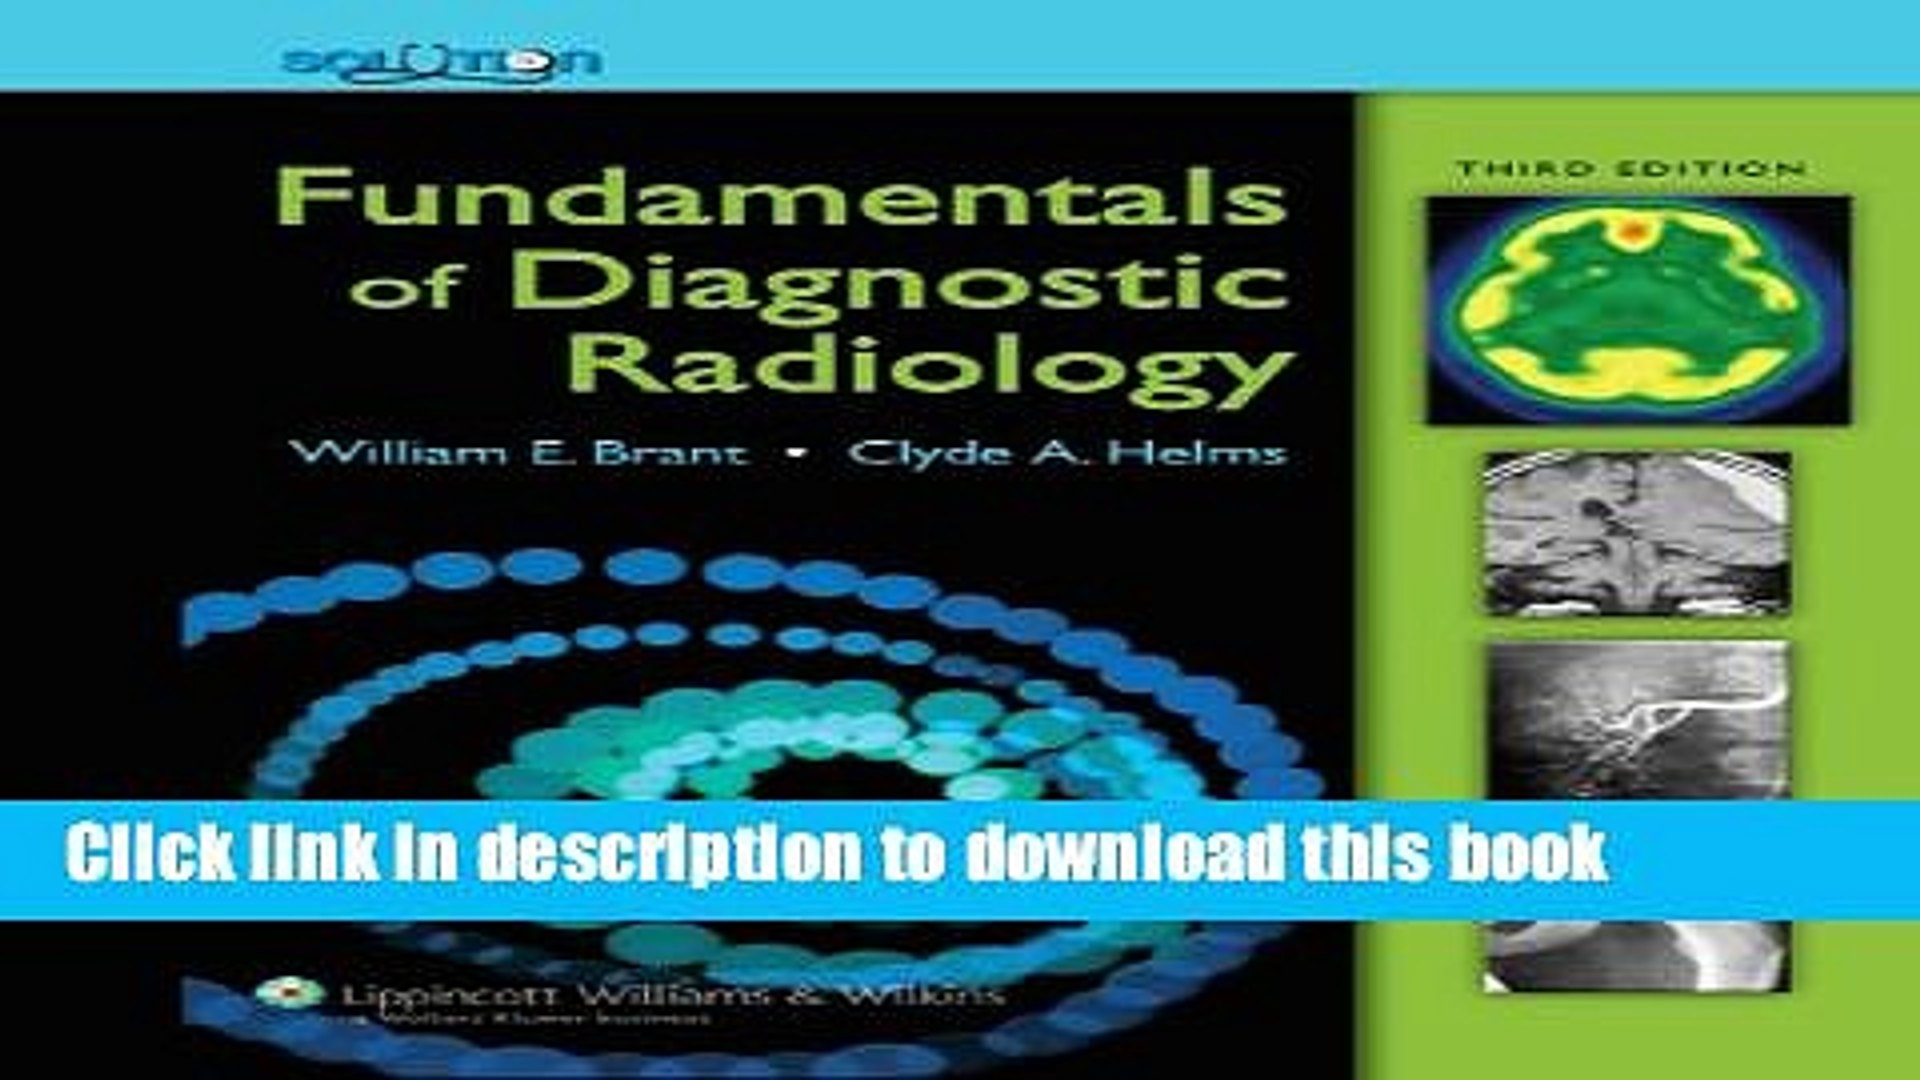 Title : Download The Brant and Helms Solution: Fundamentals of Diagnostic Radiology, Third